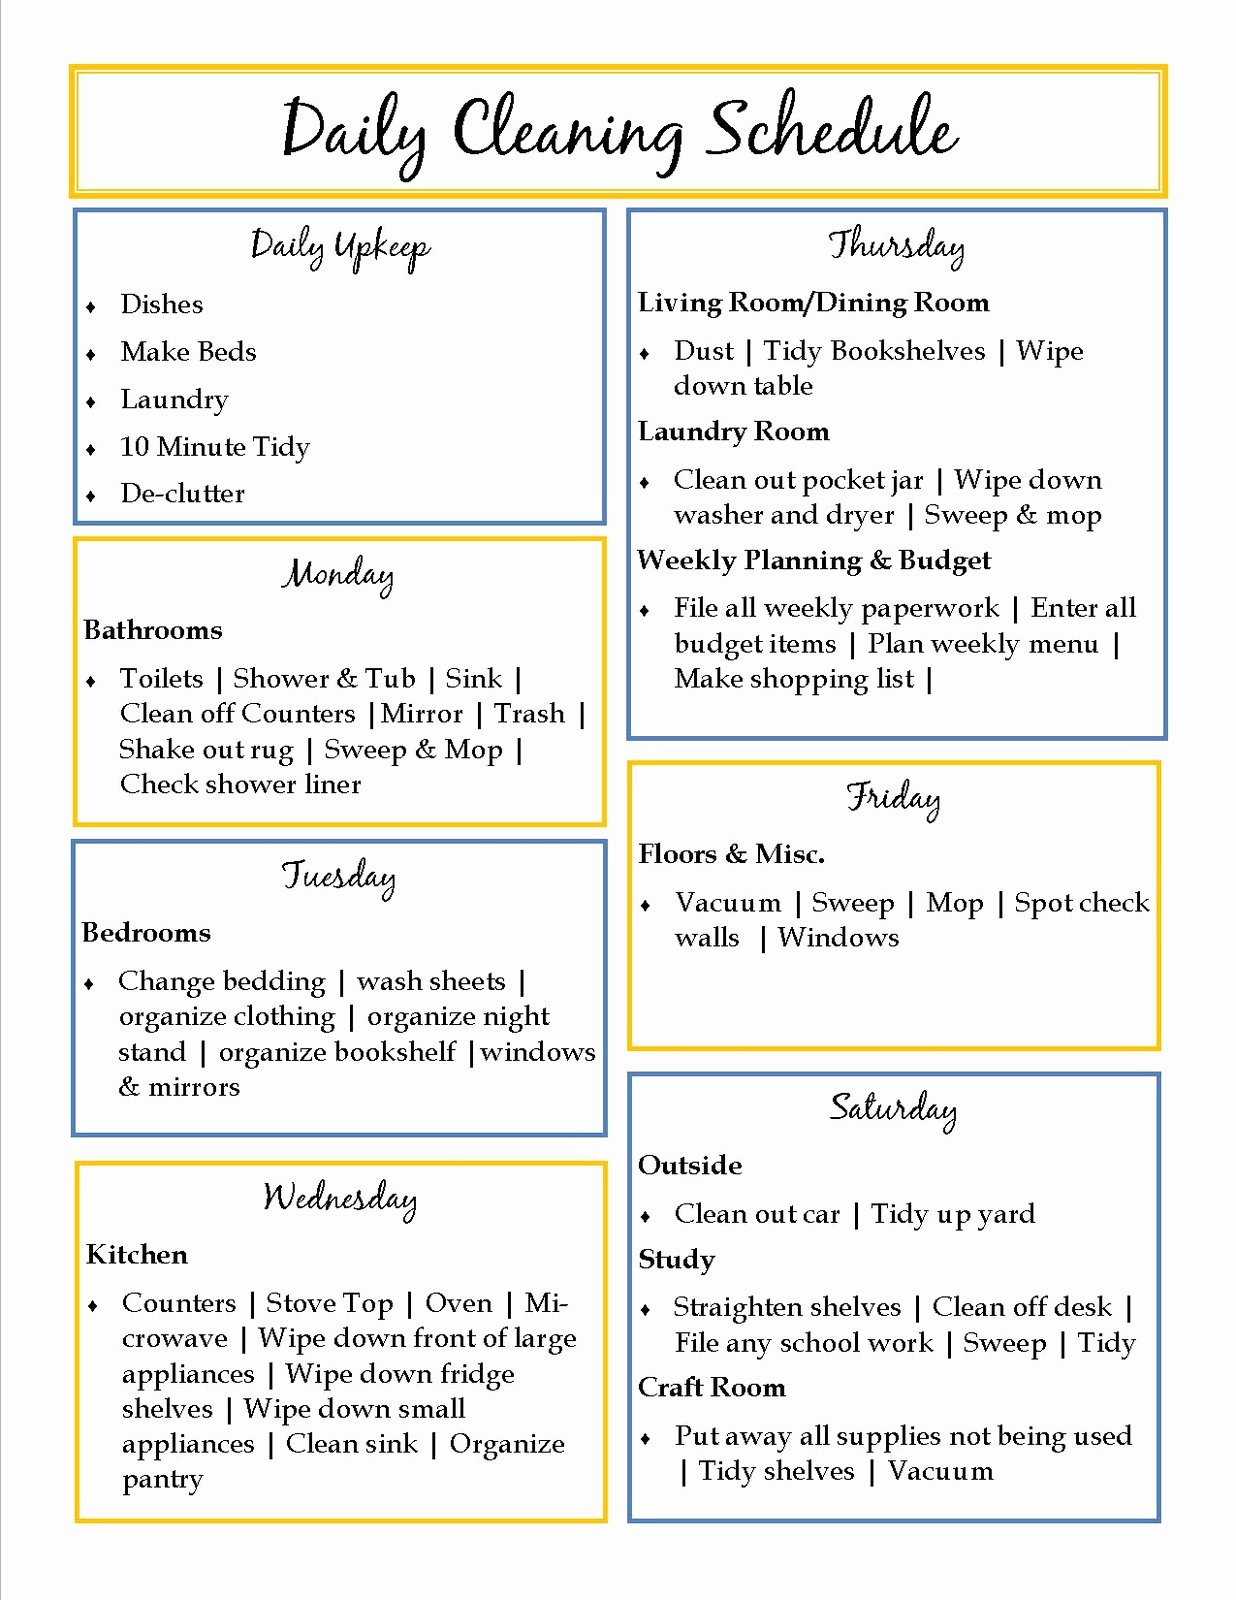 House Cleaning Checklist Template Inspirational 40 Helpful House Cleaning Checklists for You